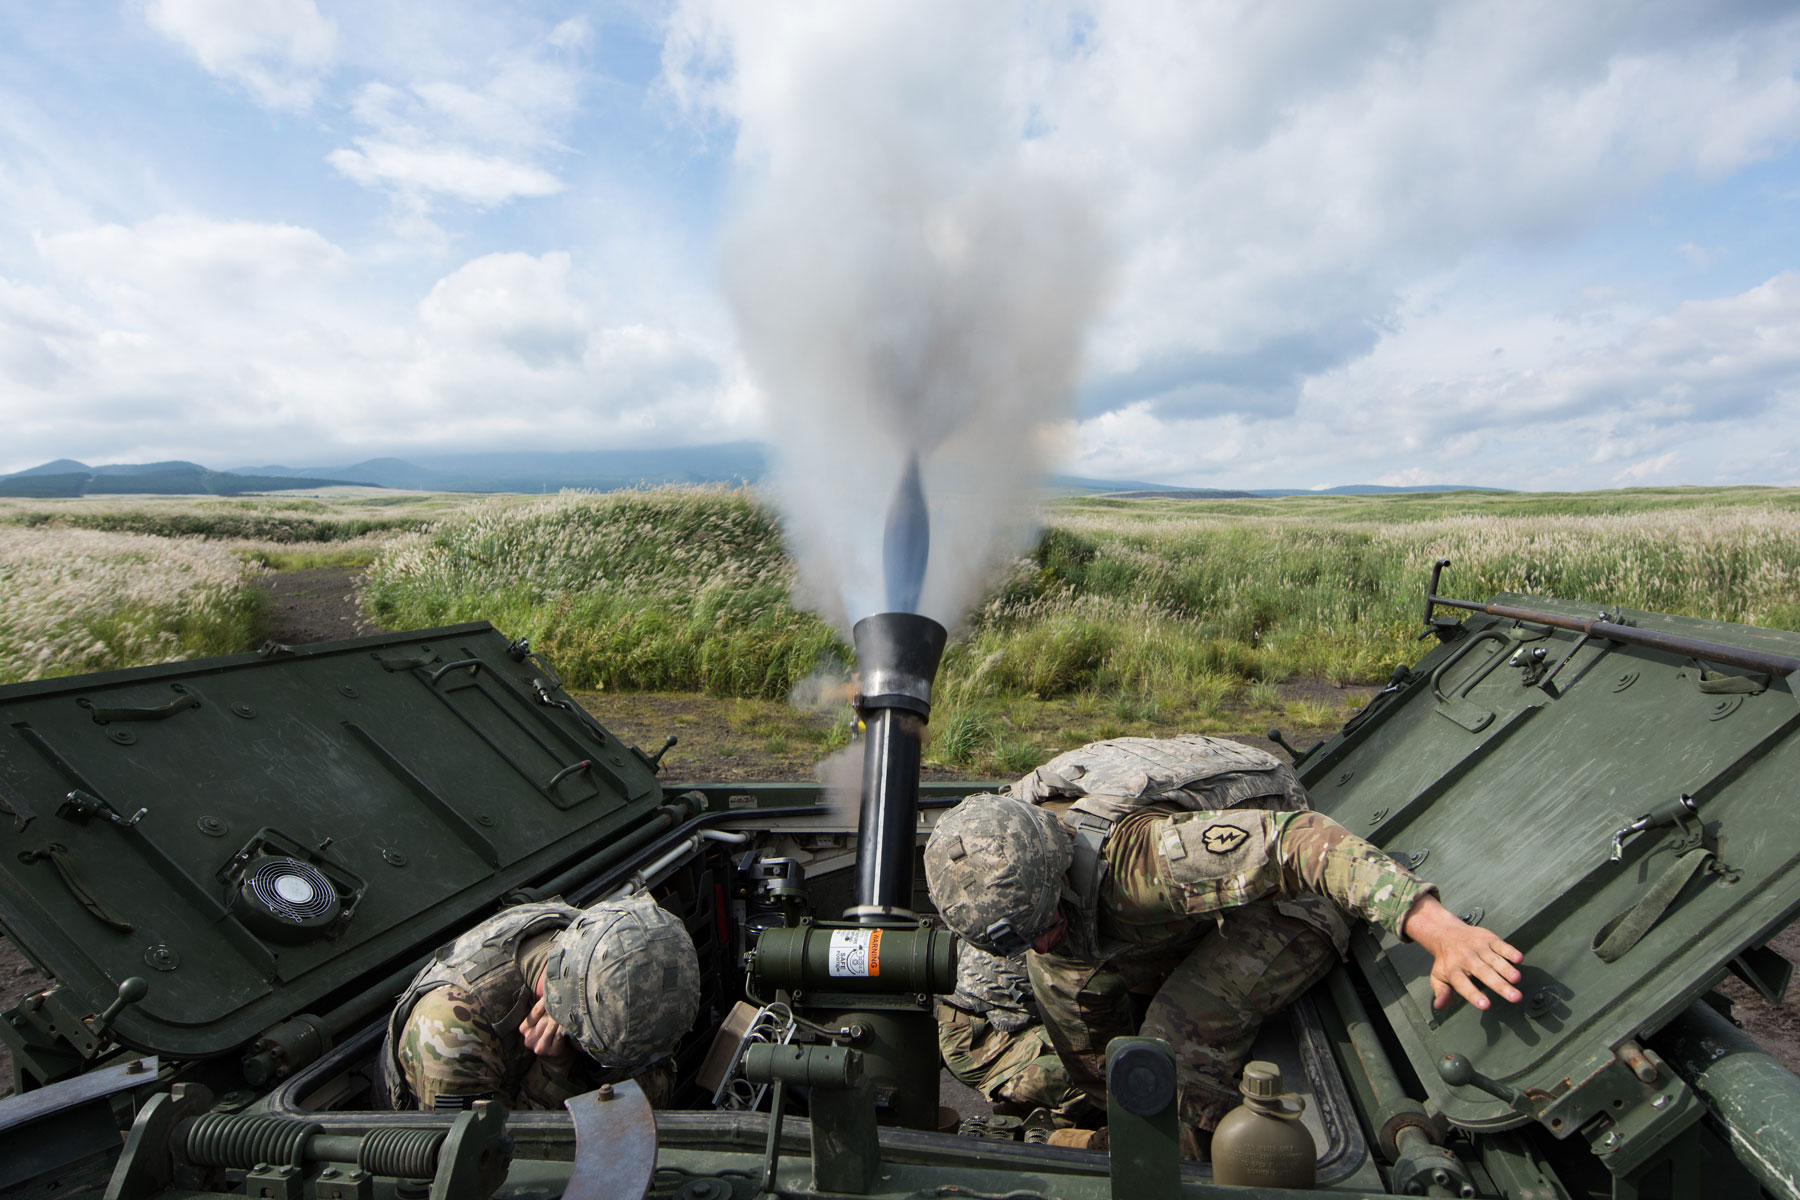 U.S. Army Soldiers assigned to Headquarters, Headquarters Company, 3rd Battalion, 21st Infantry Regiment, 1st Stryker Brigade Combat Team, 25th Infantry Division, conduct a live fire exercise utilizing a RMS6L 120mm mortar system on a M1129 Mortar Carrier as part of exercise Orient Shield 2017 at Camp Fuji, Japan.